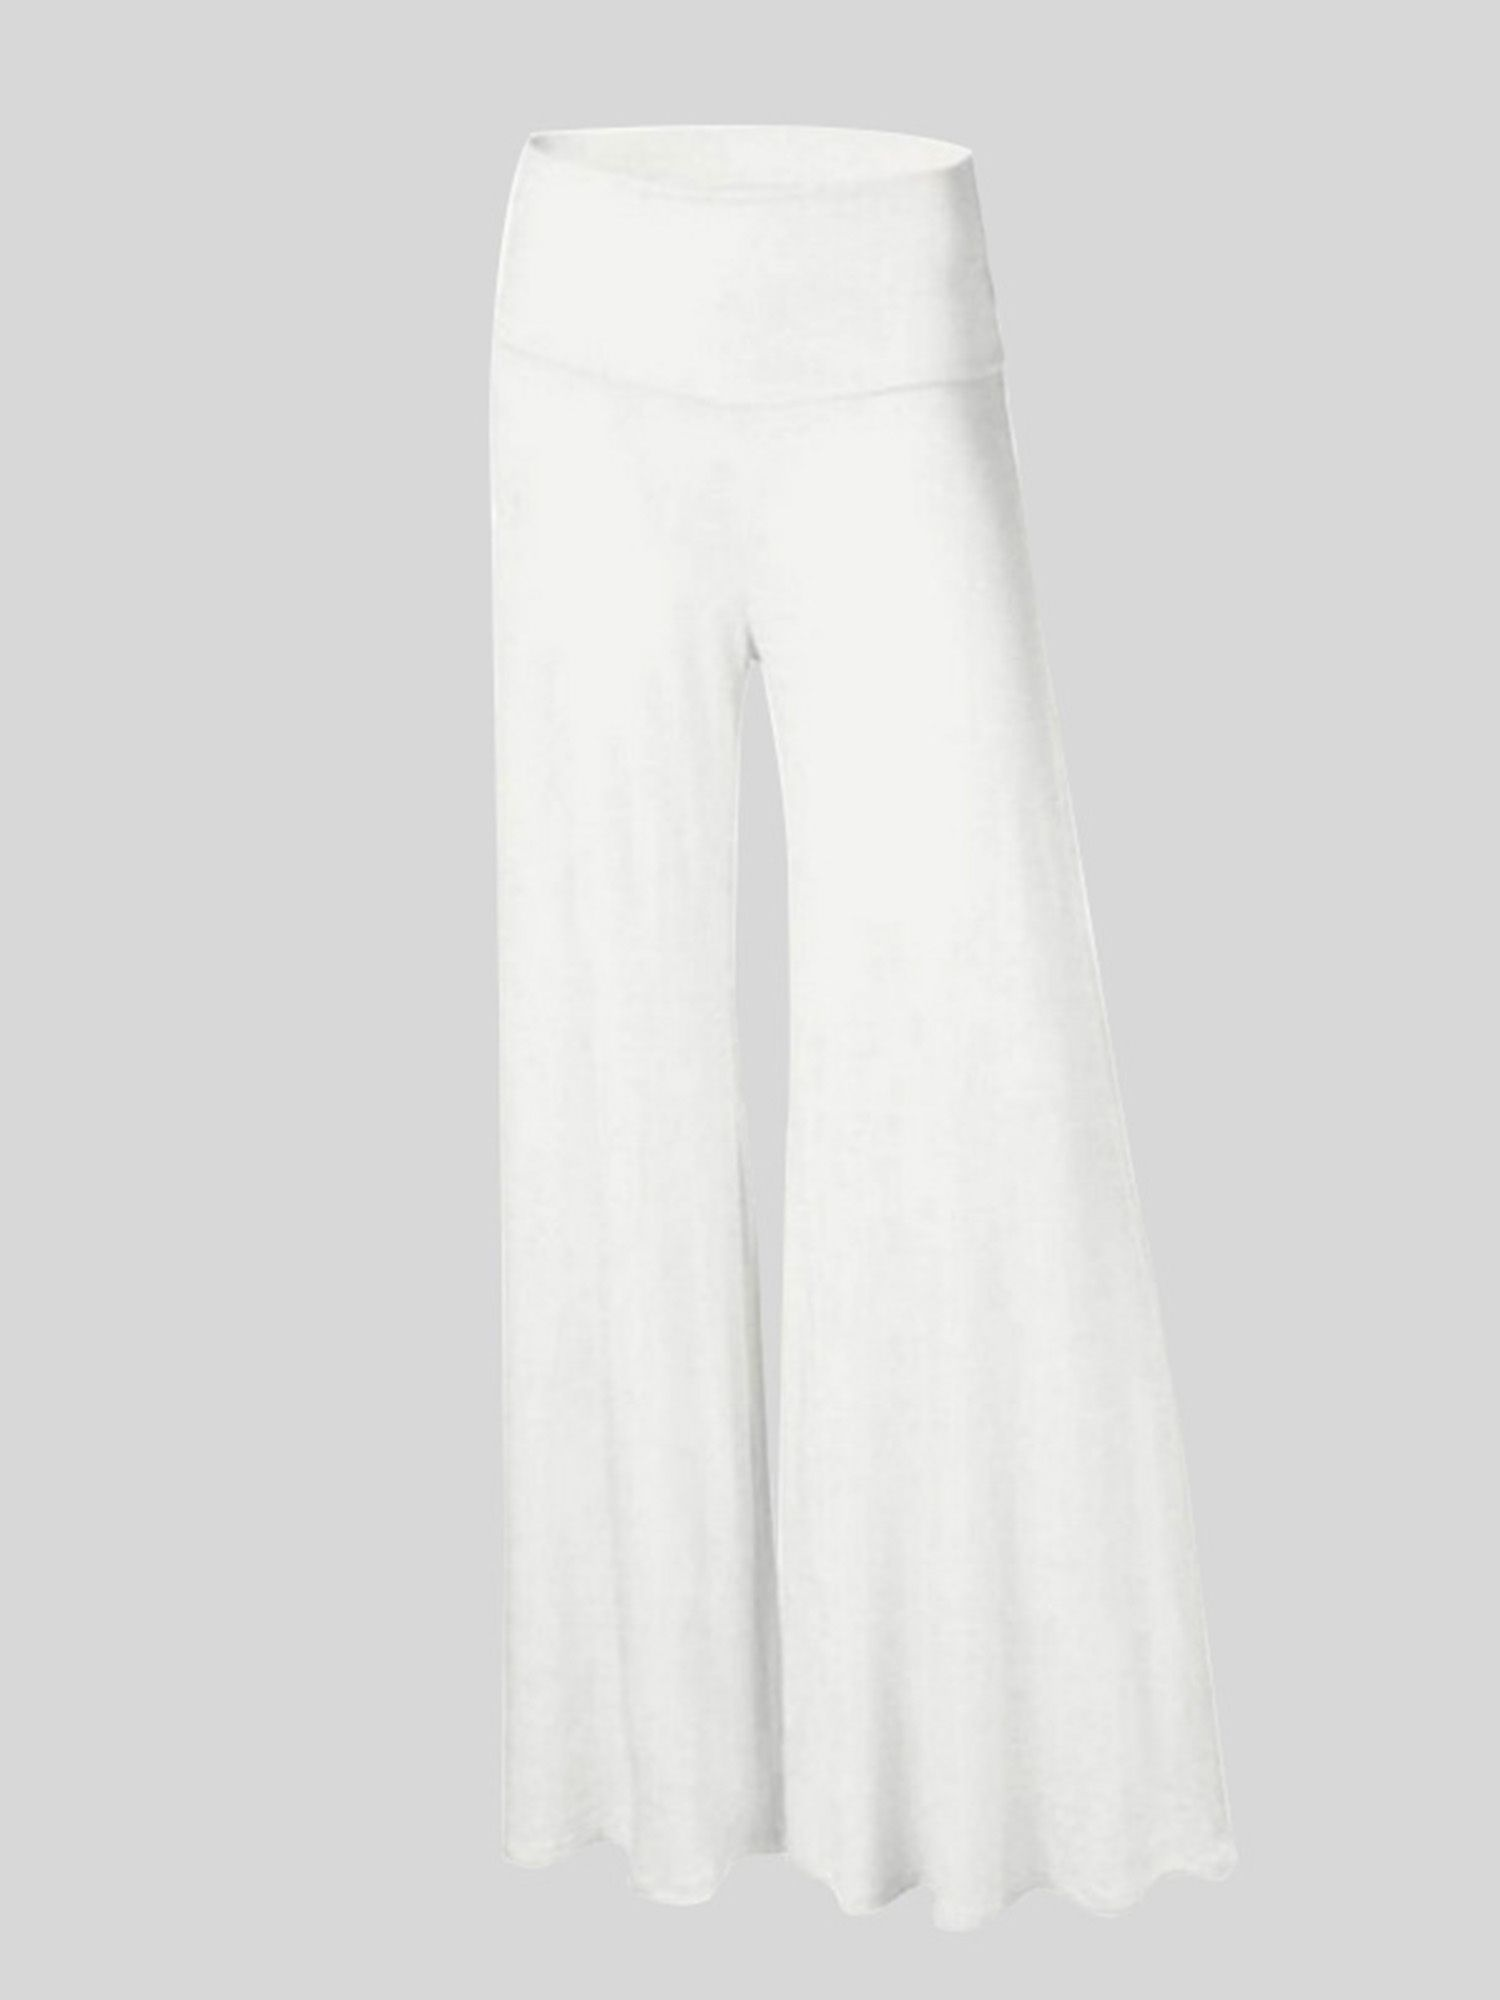 Thin Material Lumento Women S Stretchy Wide Leg Palazzo Lounge Pants Walmart Com In 2021 Wide Leg Pant Outfit Leg Pants Outfit Lounge Pants [ 2000 x 1500 Pixel ]